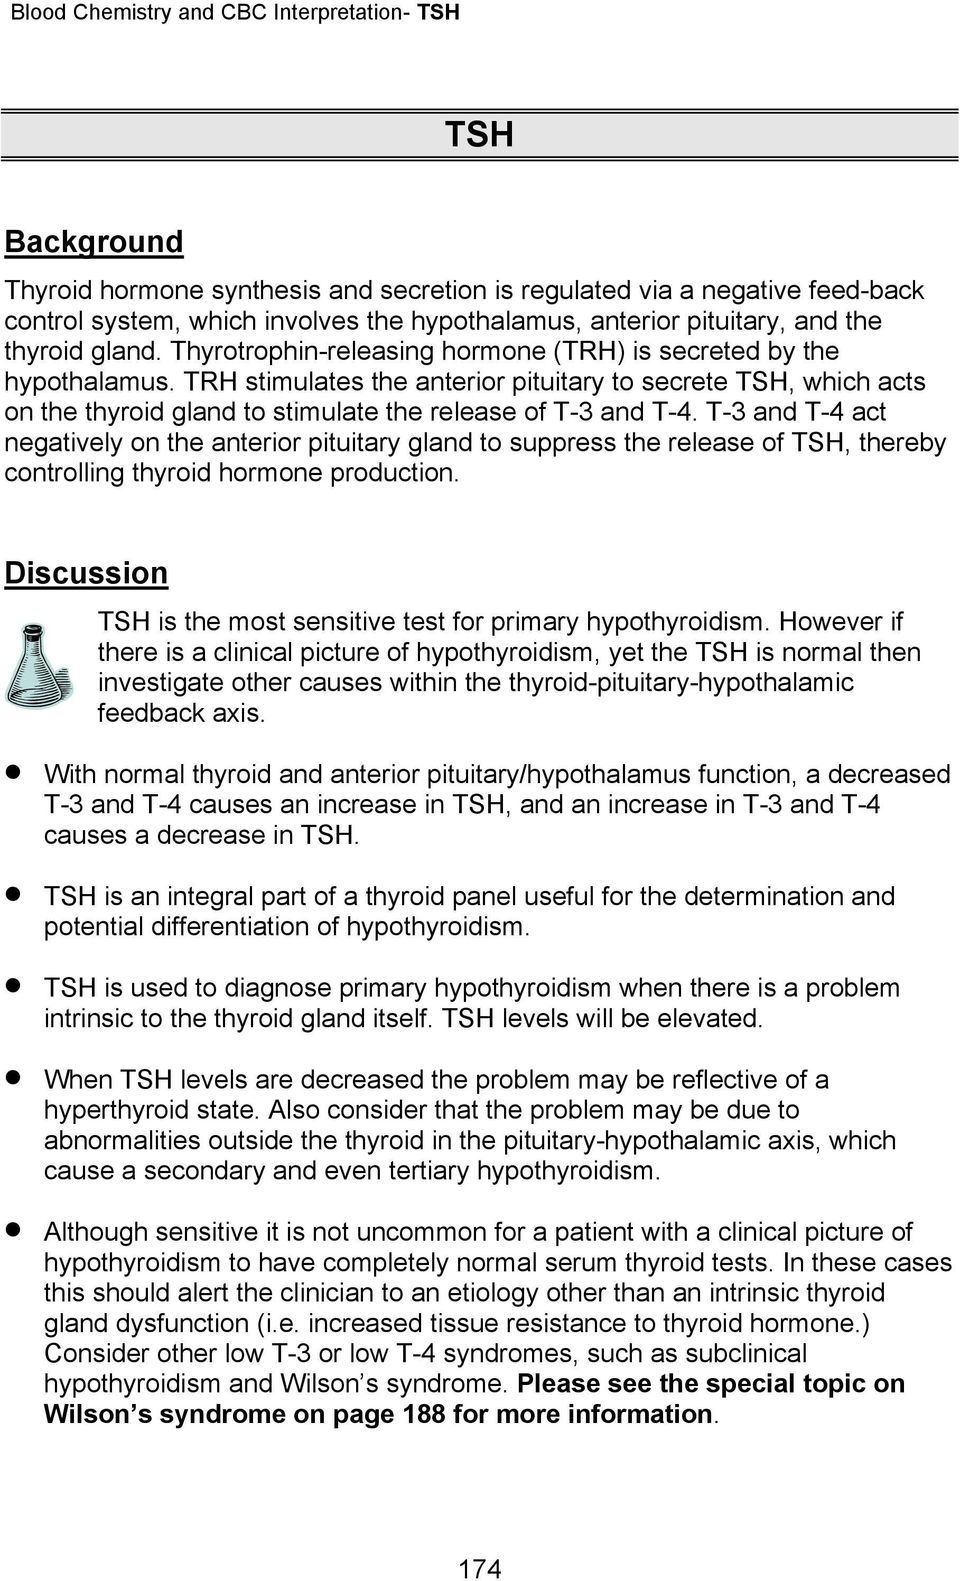 T-3 and T-4 act negatively on the anterior pituitary gland to suppress the release of TSH, thereby controlling thyroid hormone production.